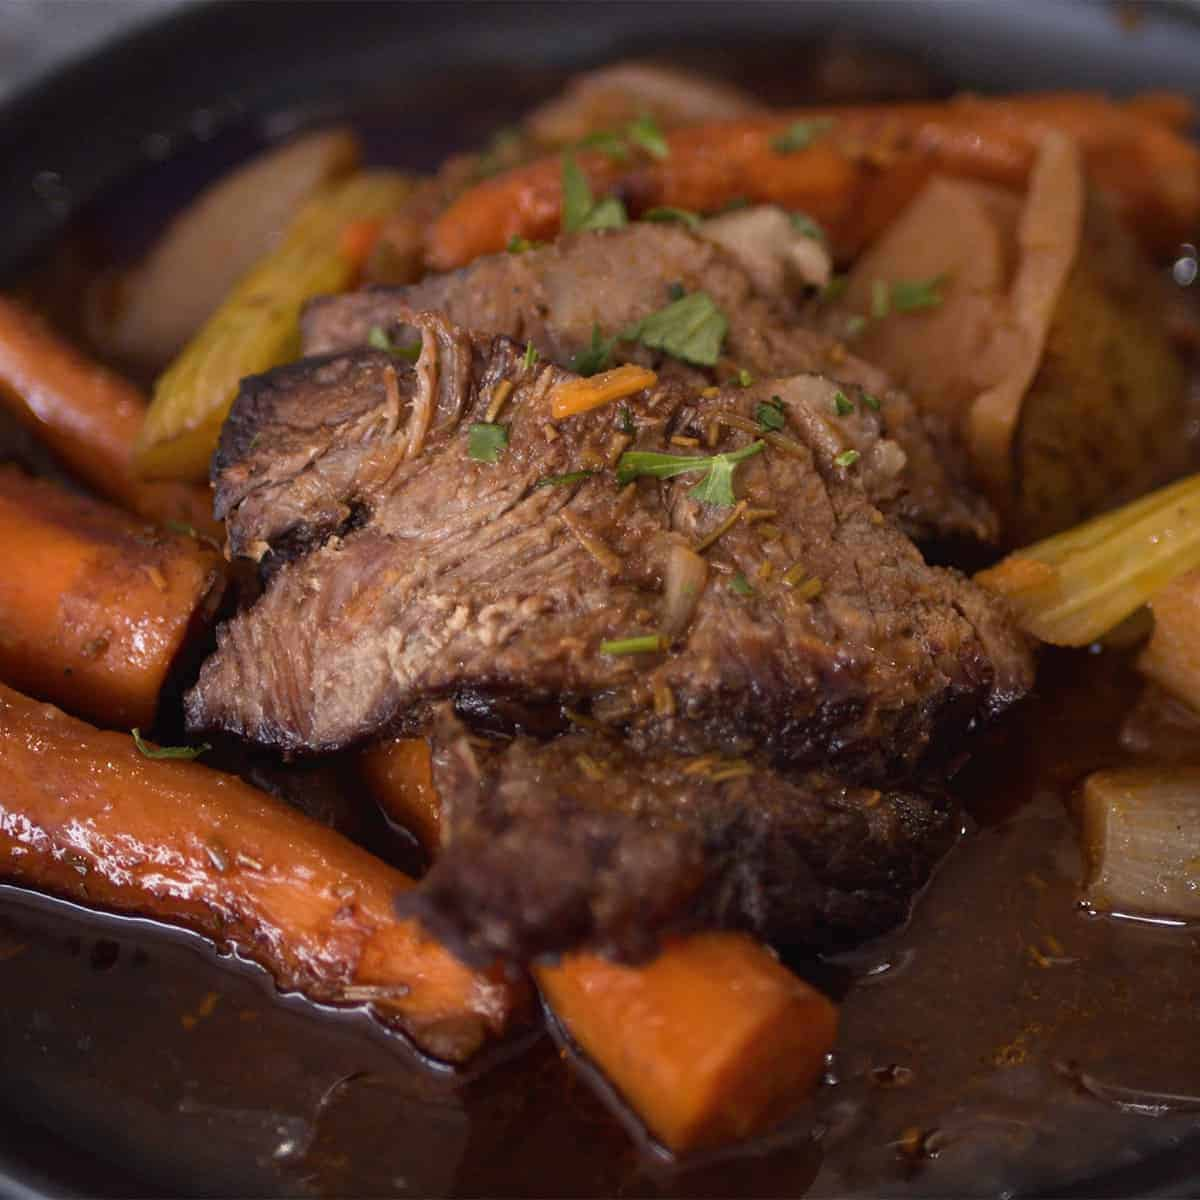 Beef chuck roast with potatoes and carrots